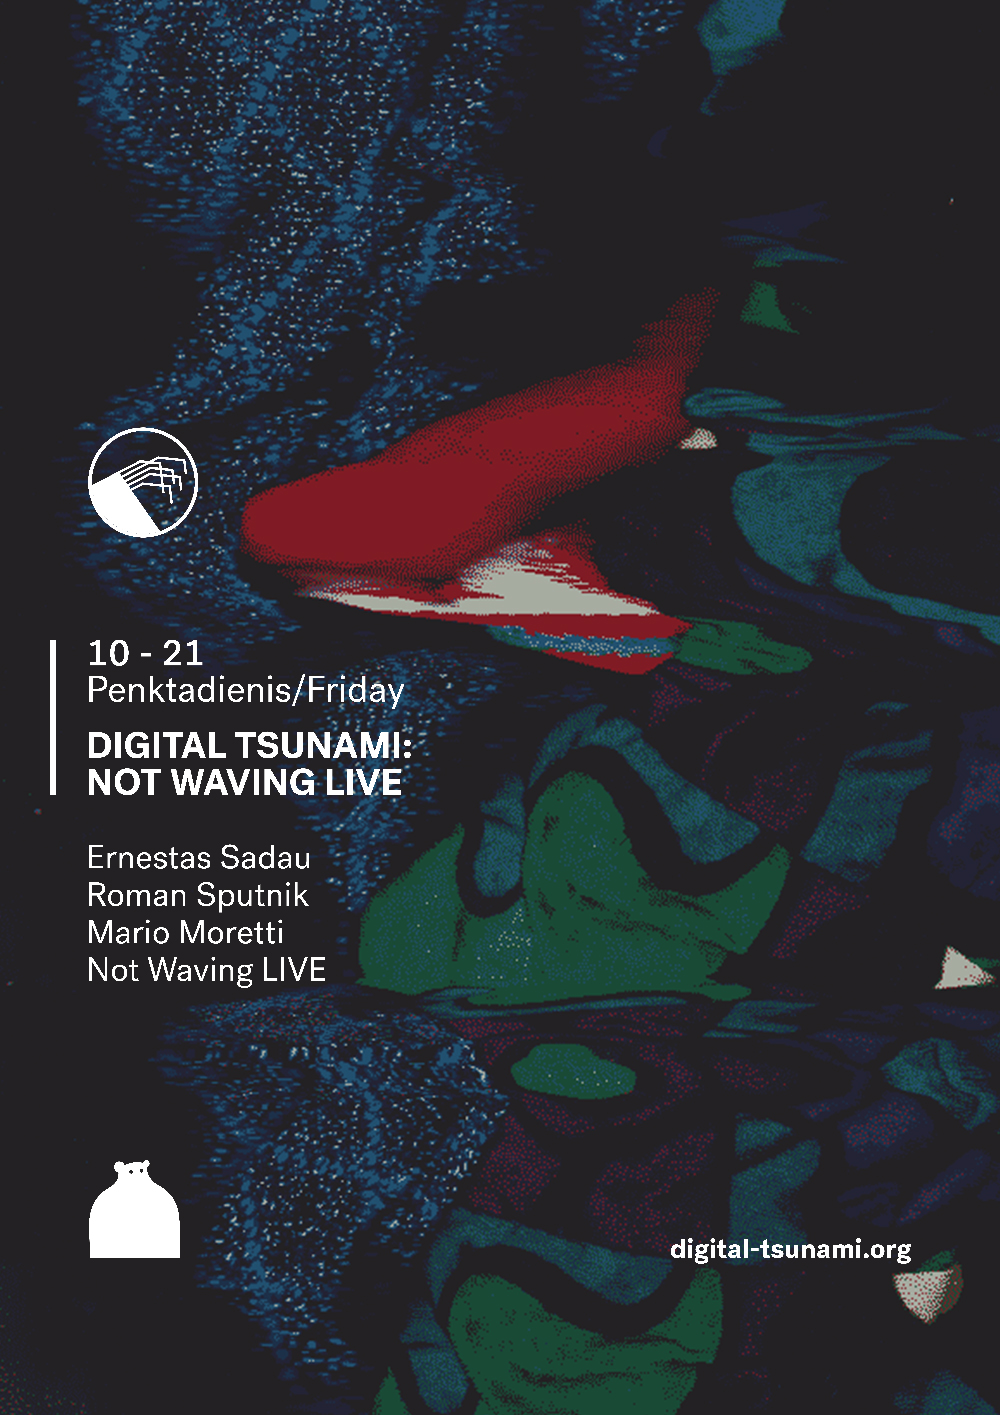 Digital Tsunami: Not Waving Live